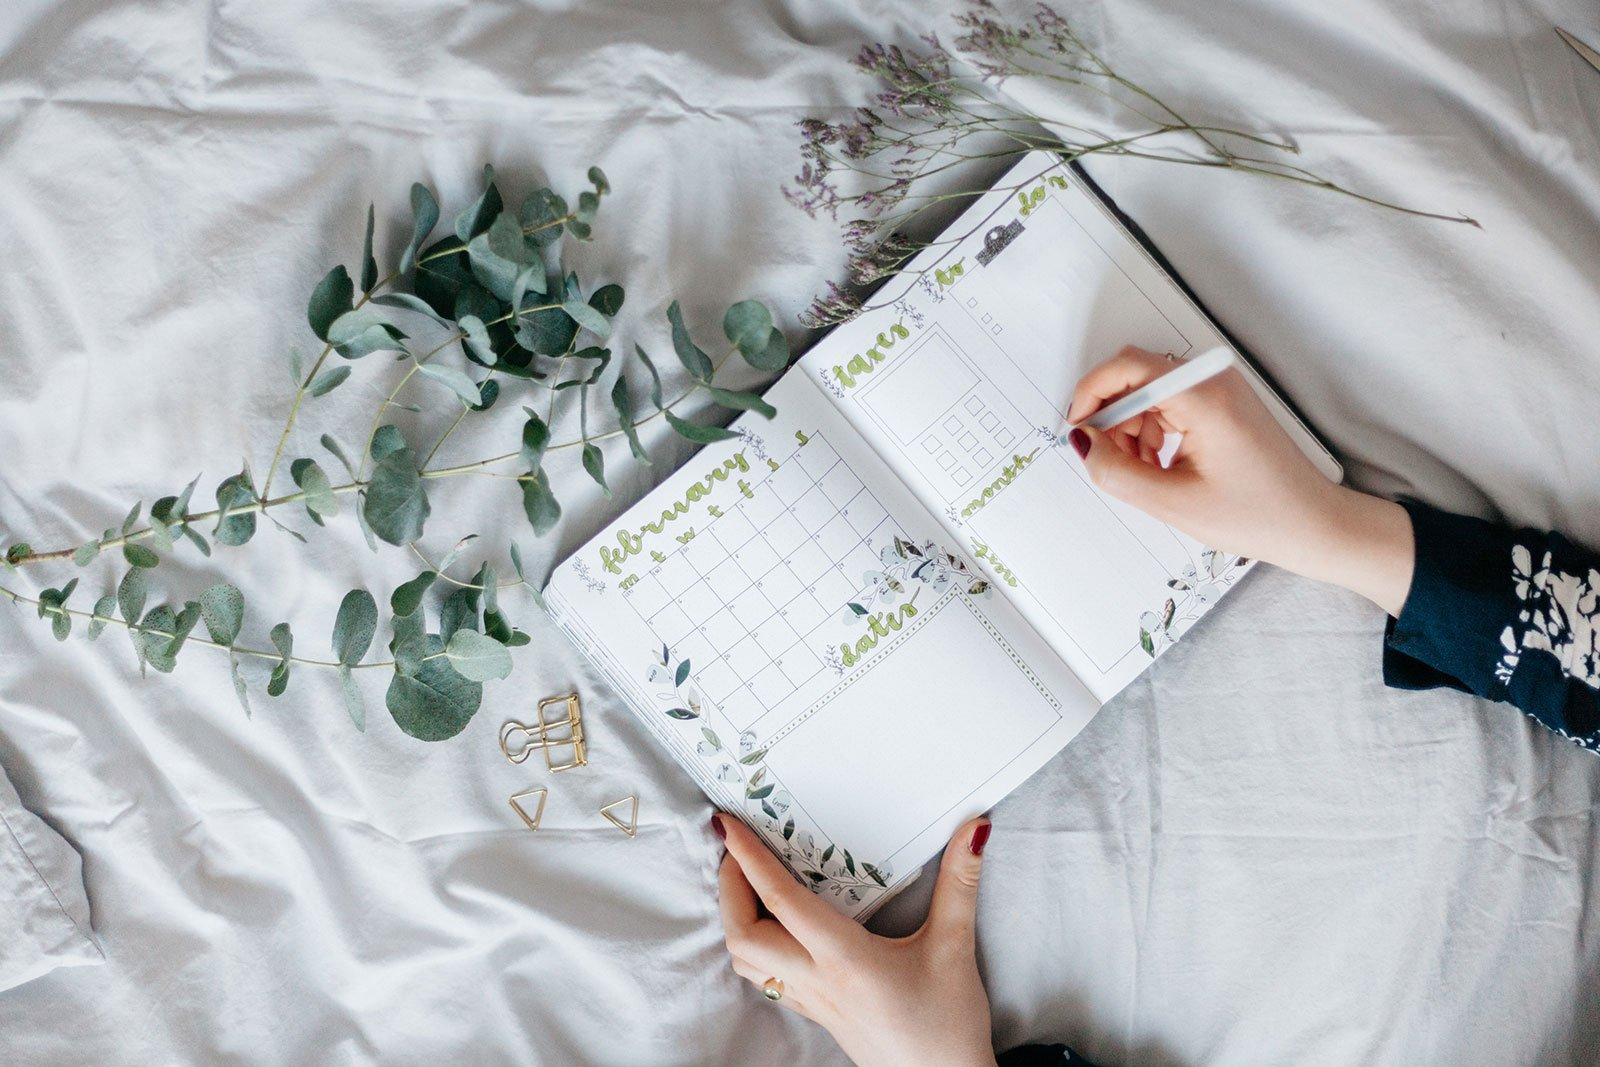 A Girl's hand writing in a green floral wedding planner